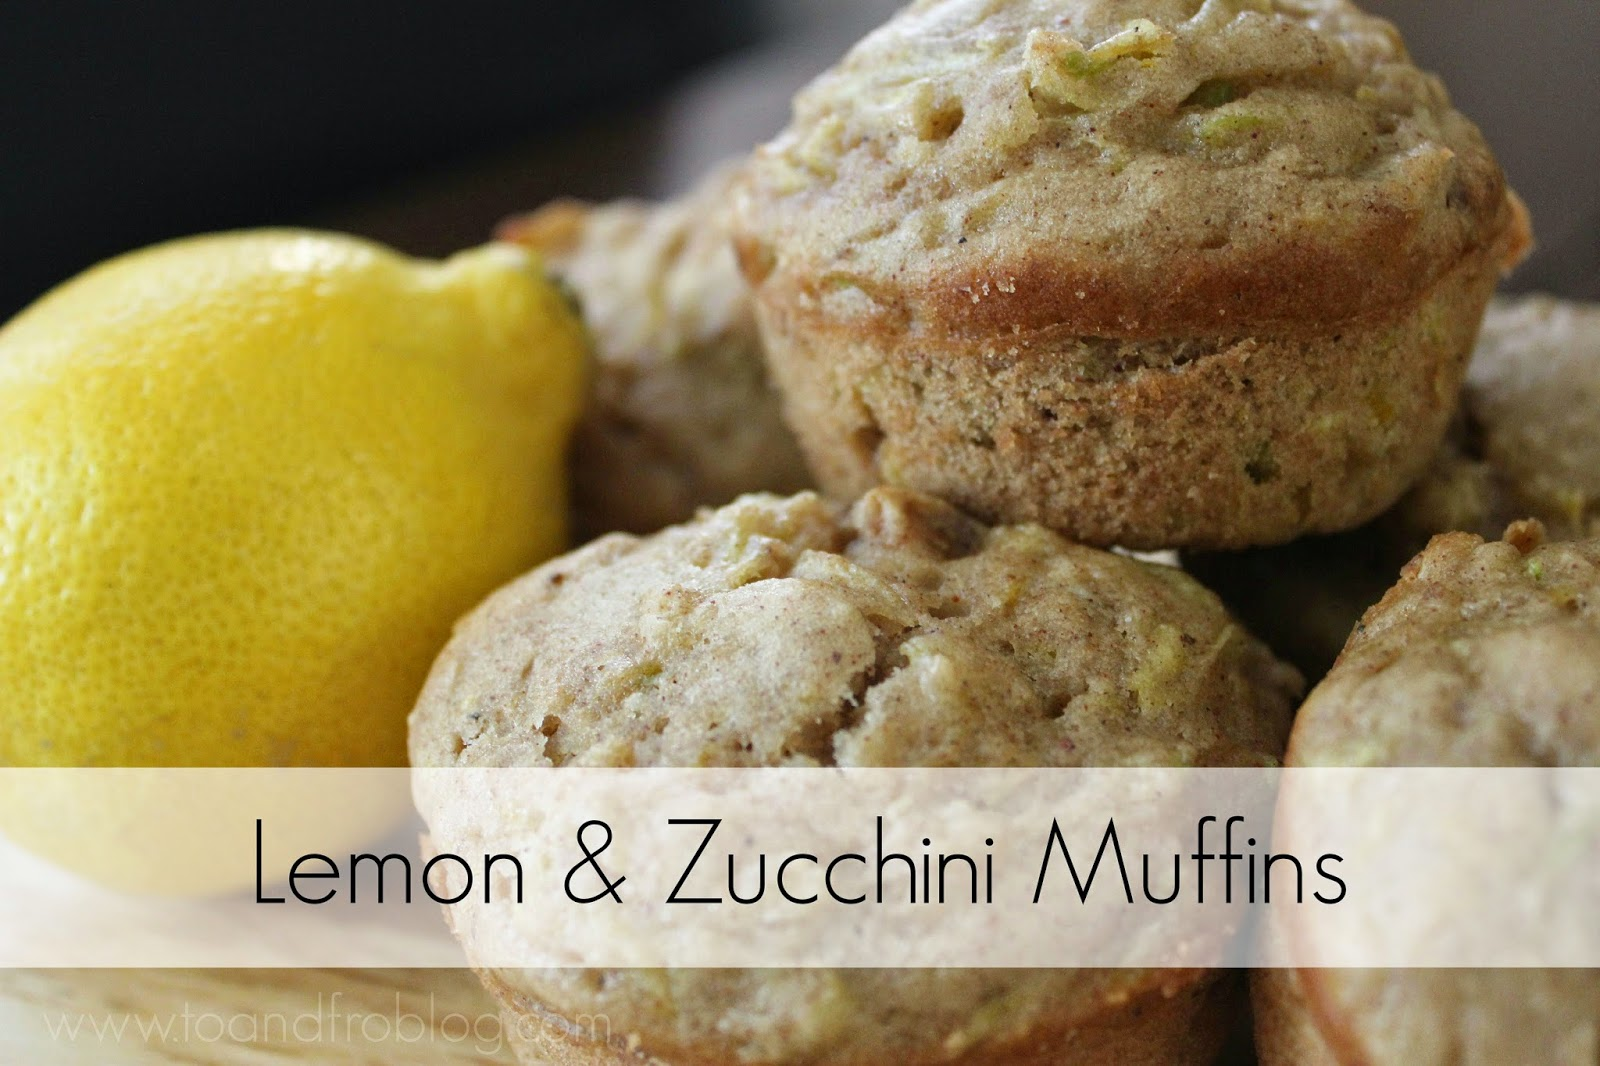 lemon zucchini muffin recipe